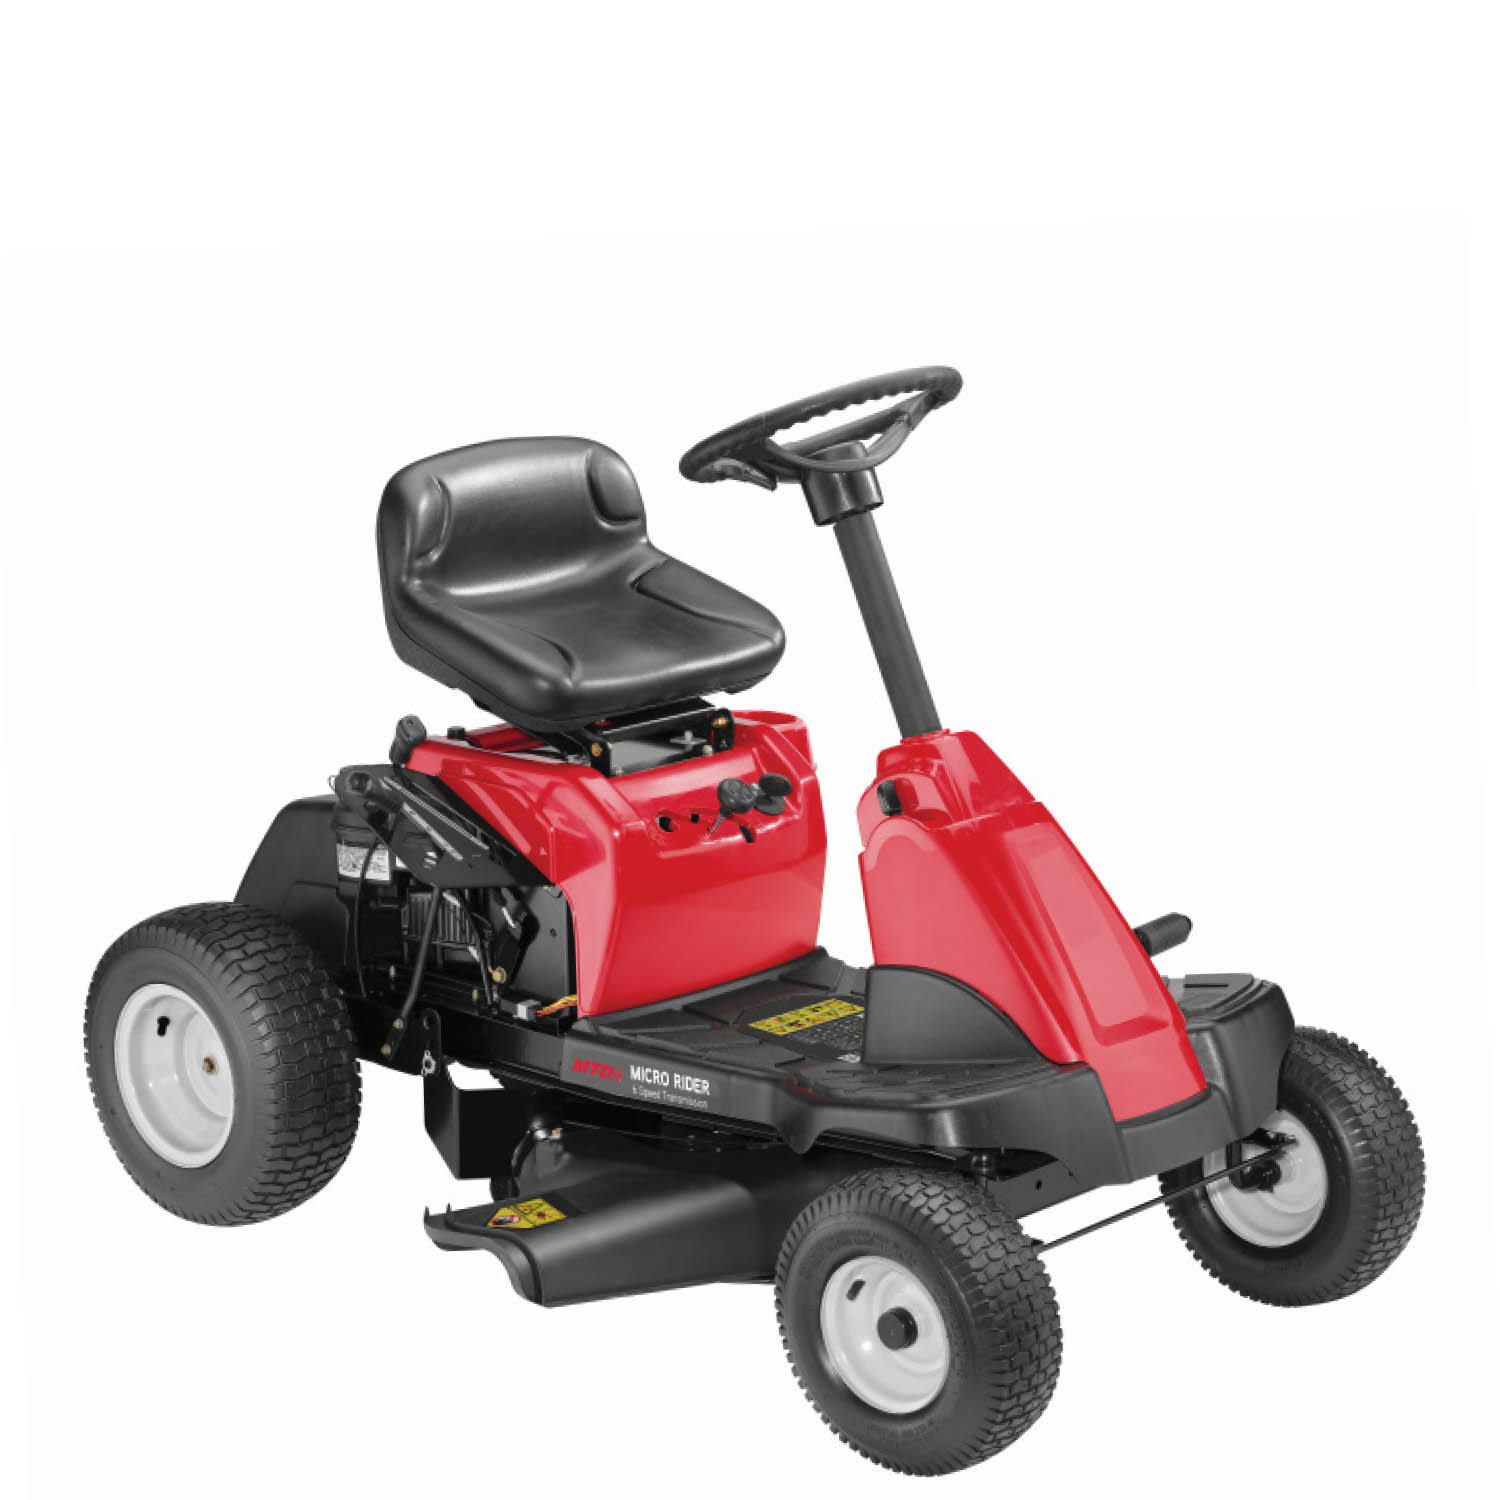 Mtd Mini Rider 875 Gatmans Mowers